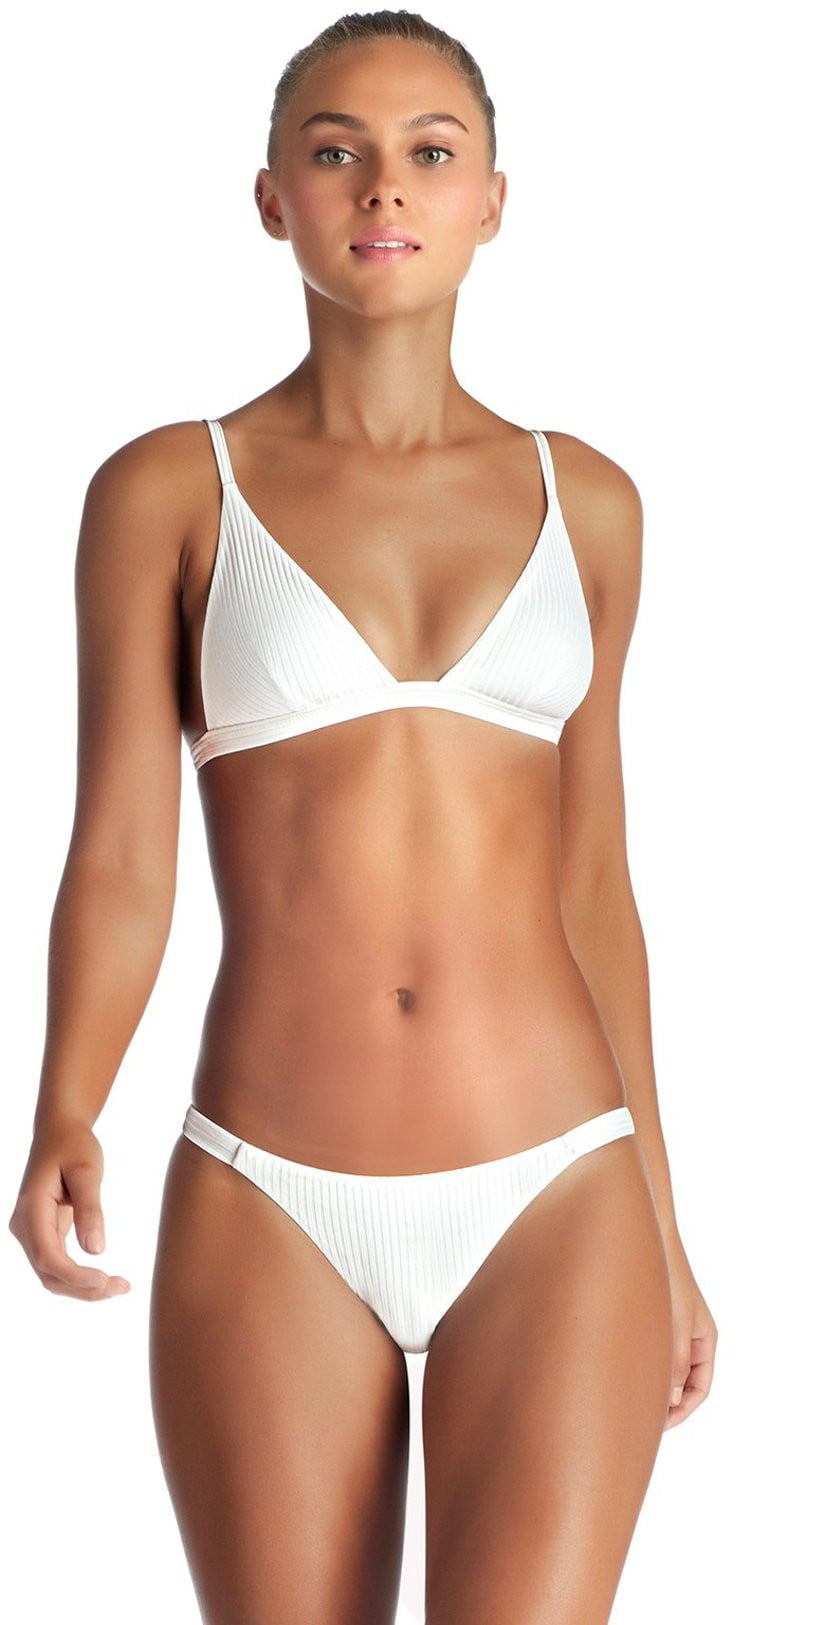 Vitamin A Carmen EcoRib Cheeky Bottom in White 84B ERW: